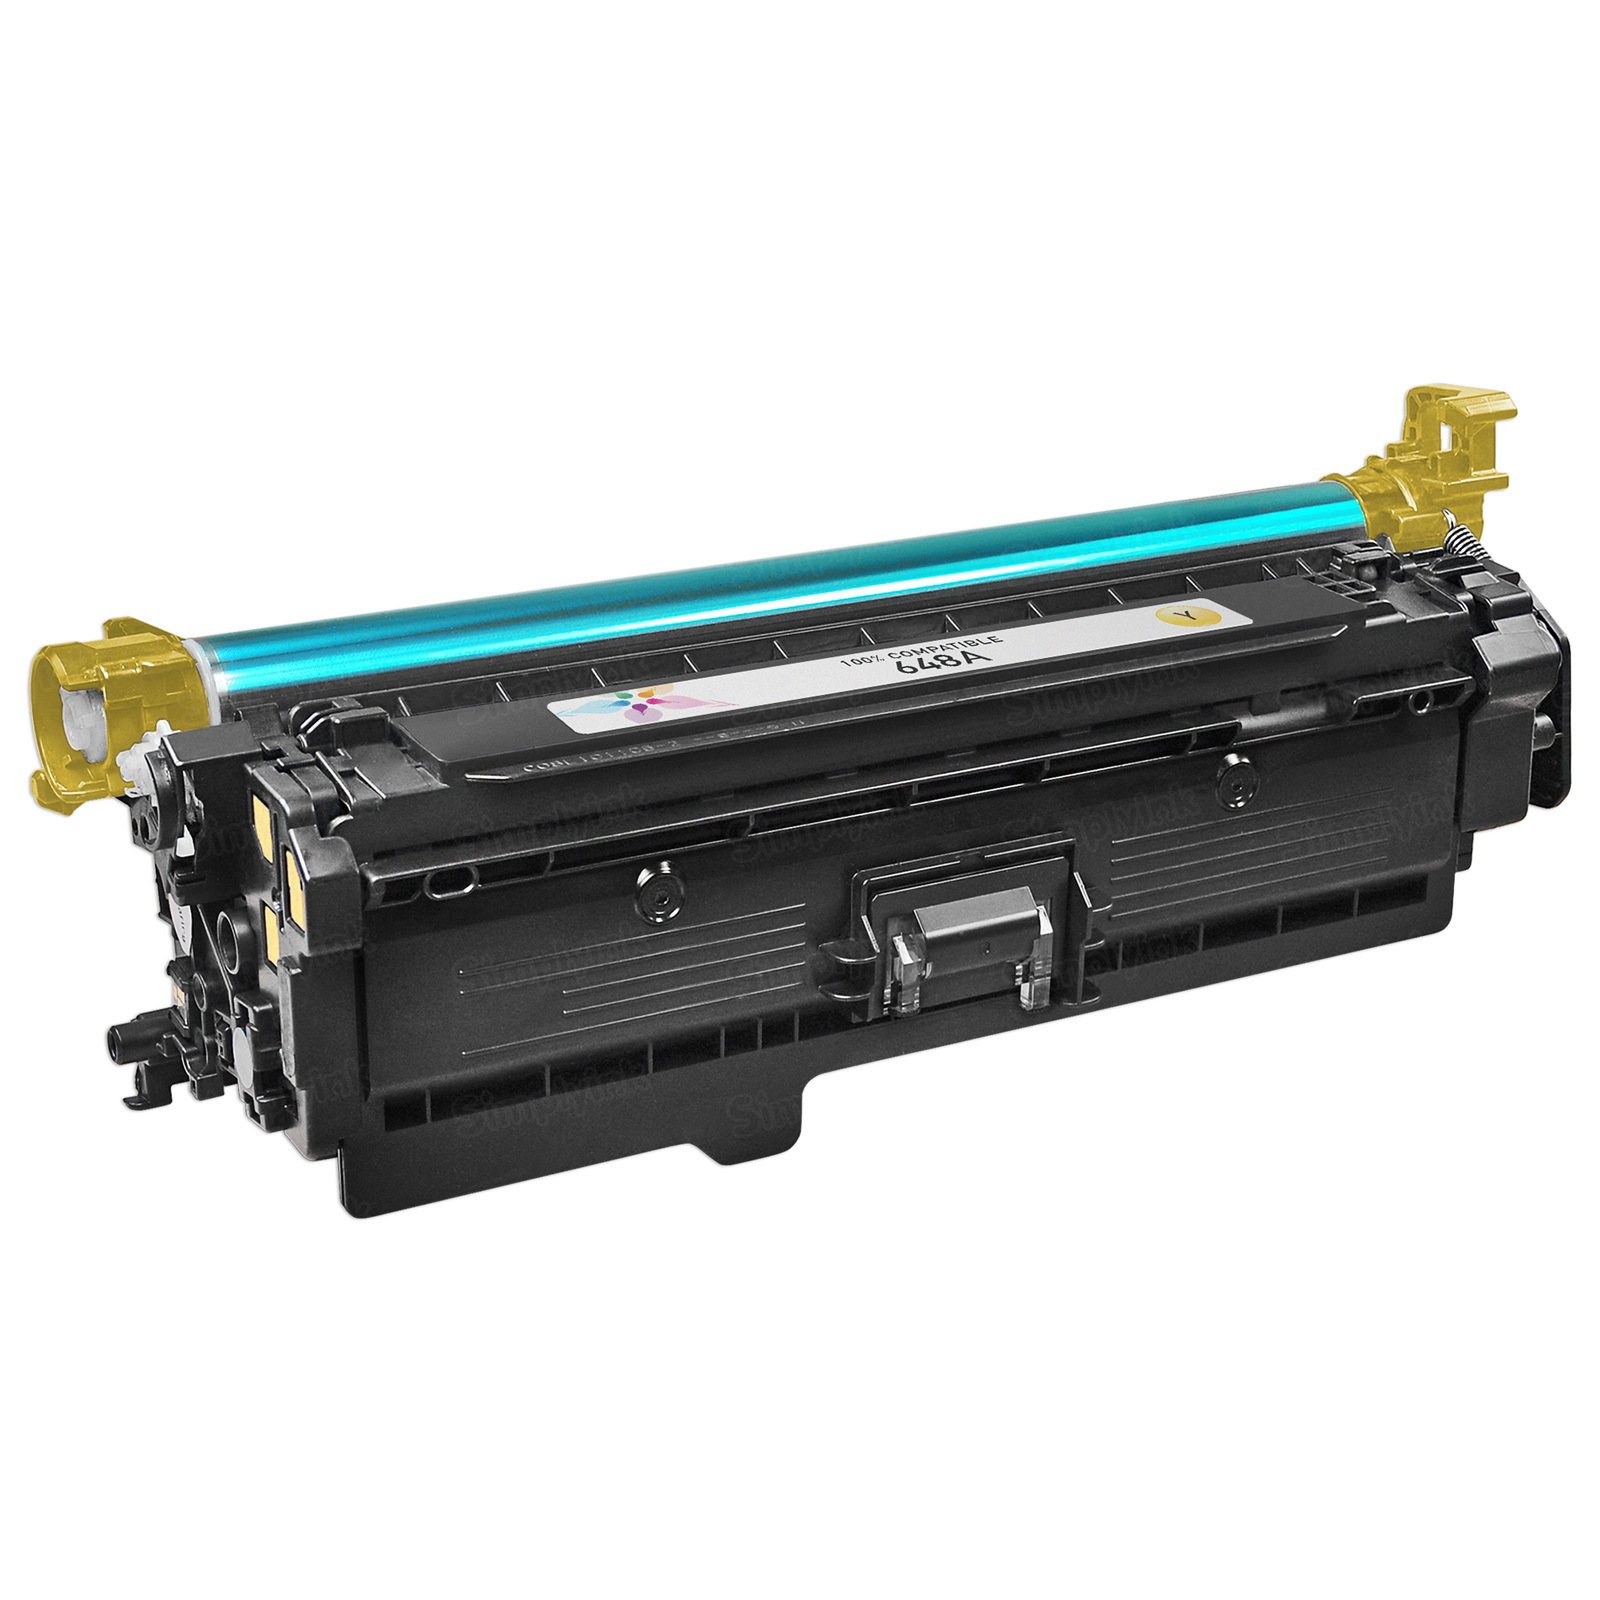 Remanufactured Replacement Yellow Laser Toner for HP 648A